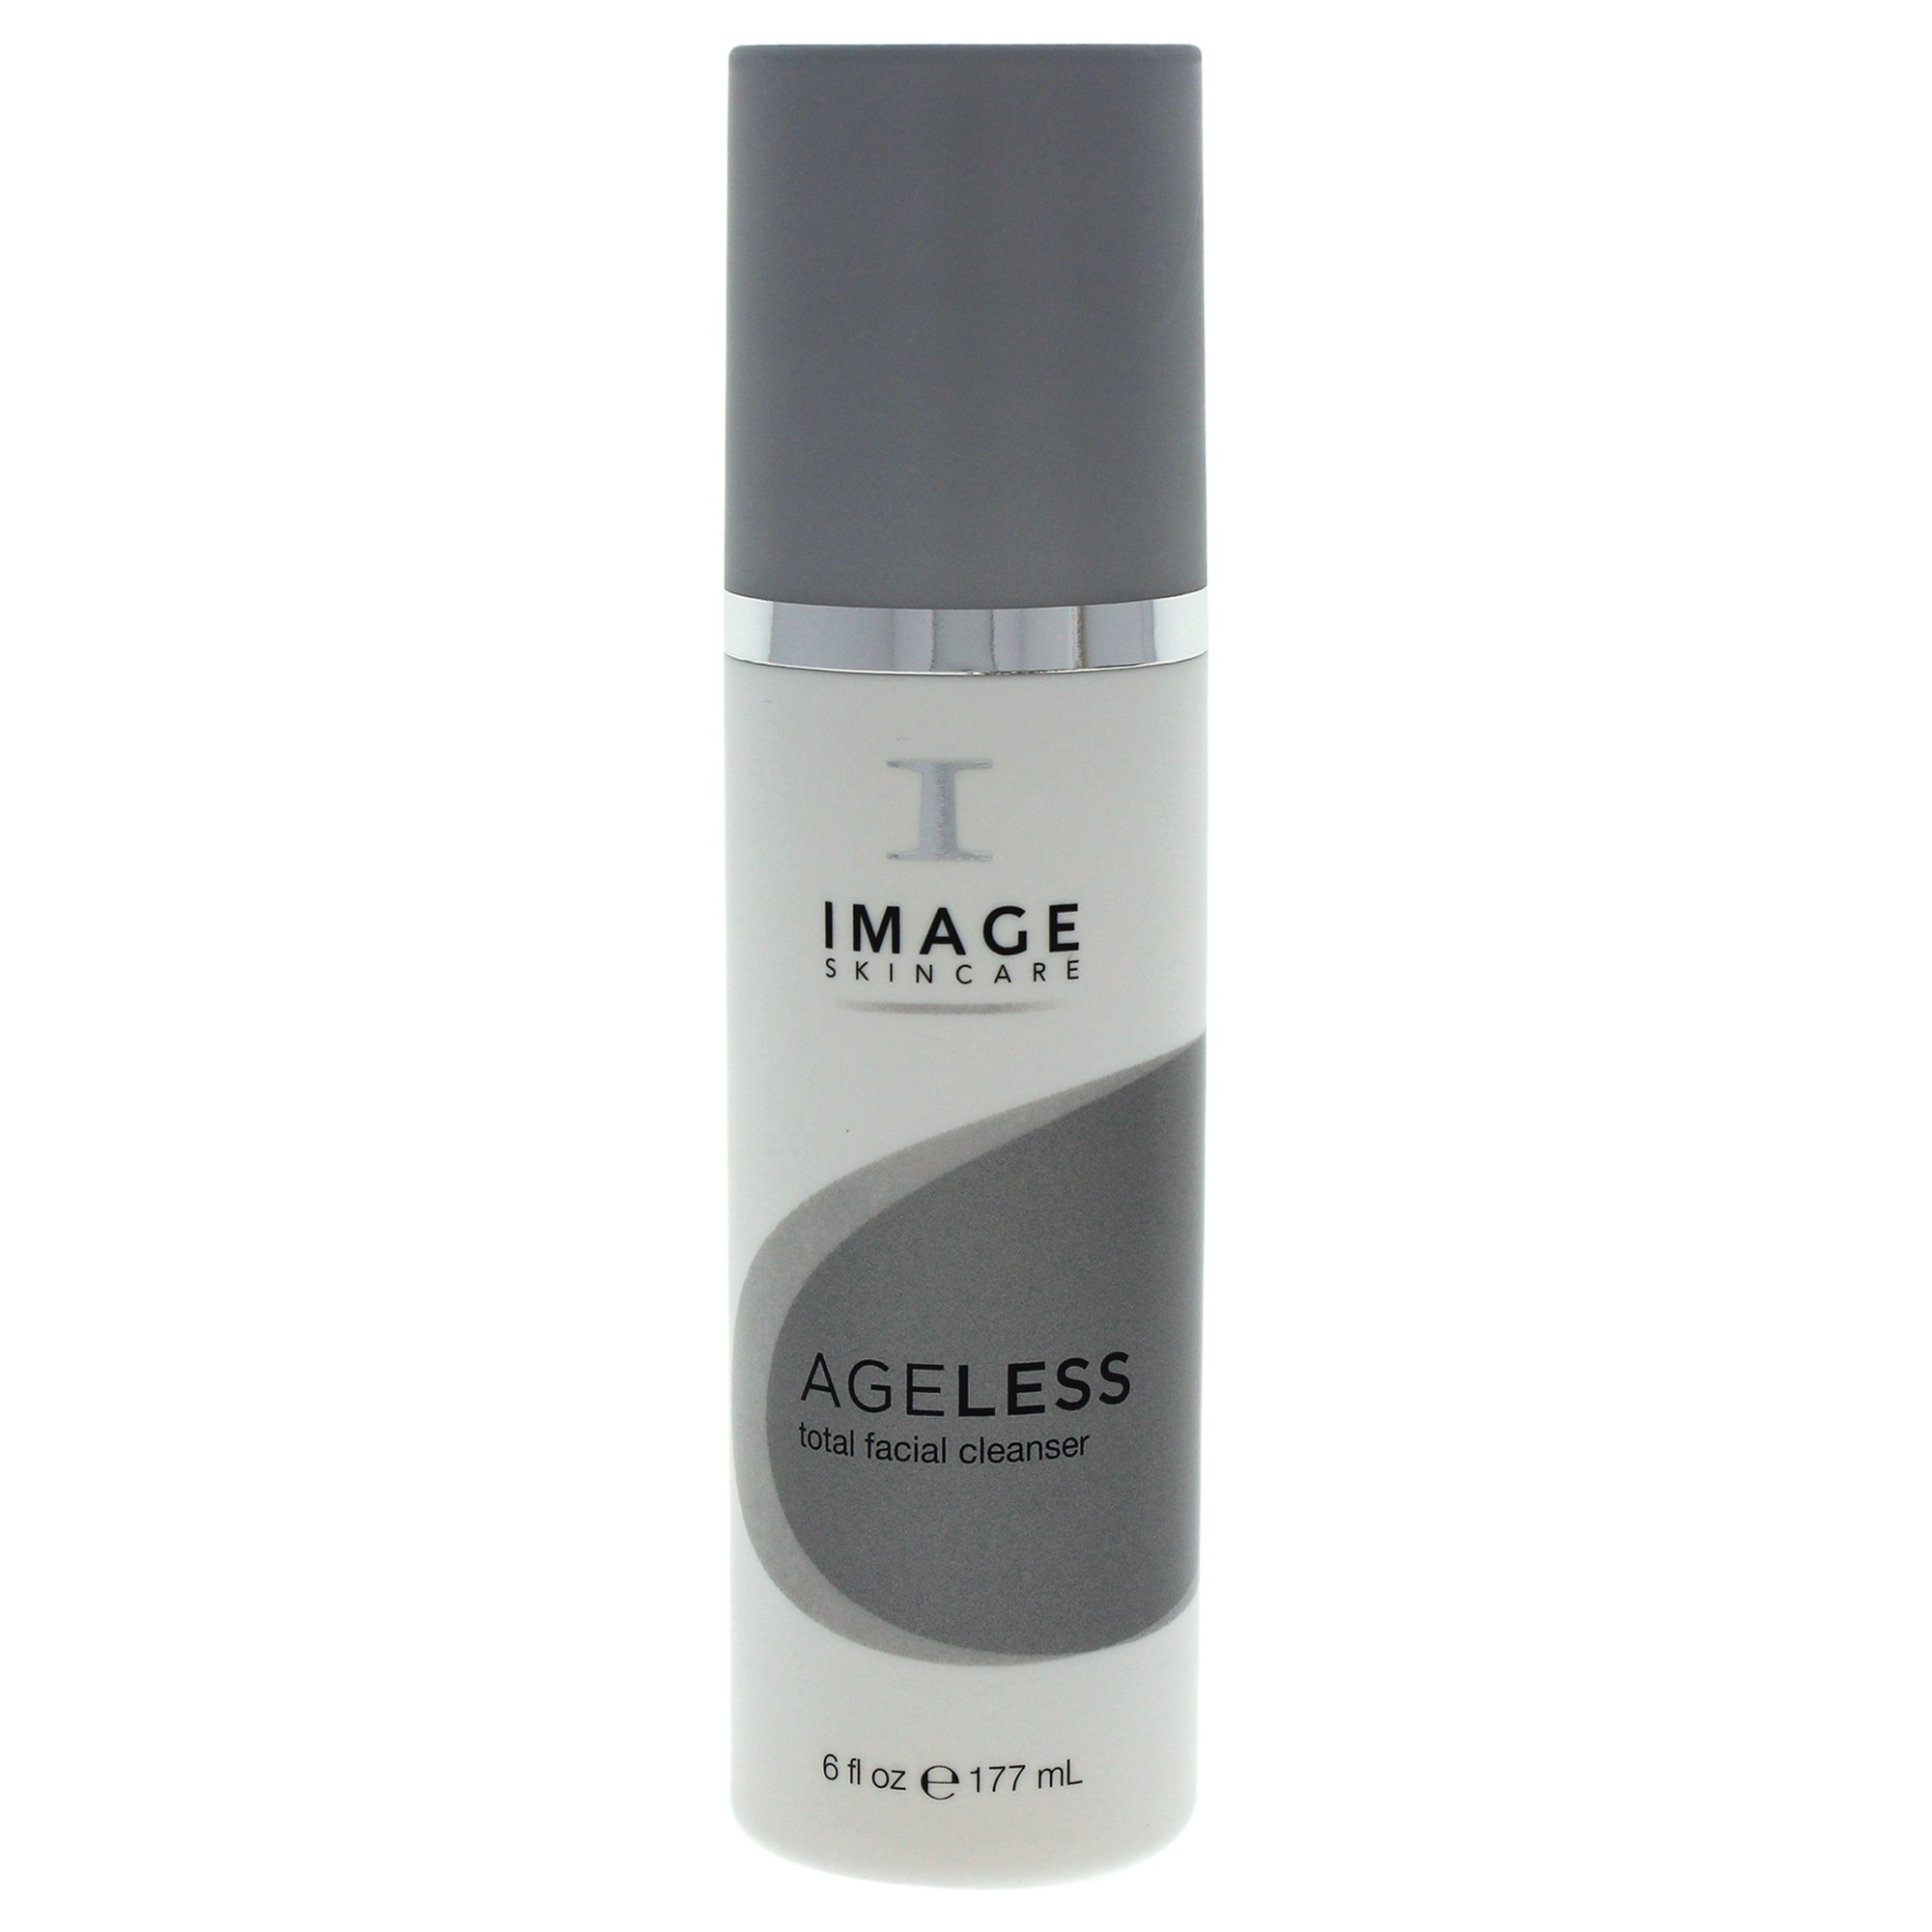 IMAGE Skincare Ageless Total Facial Cleanser, 6 oz.